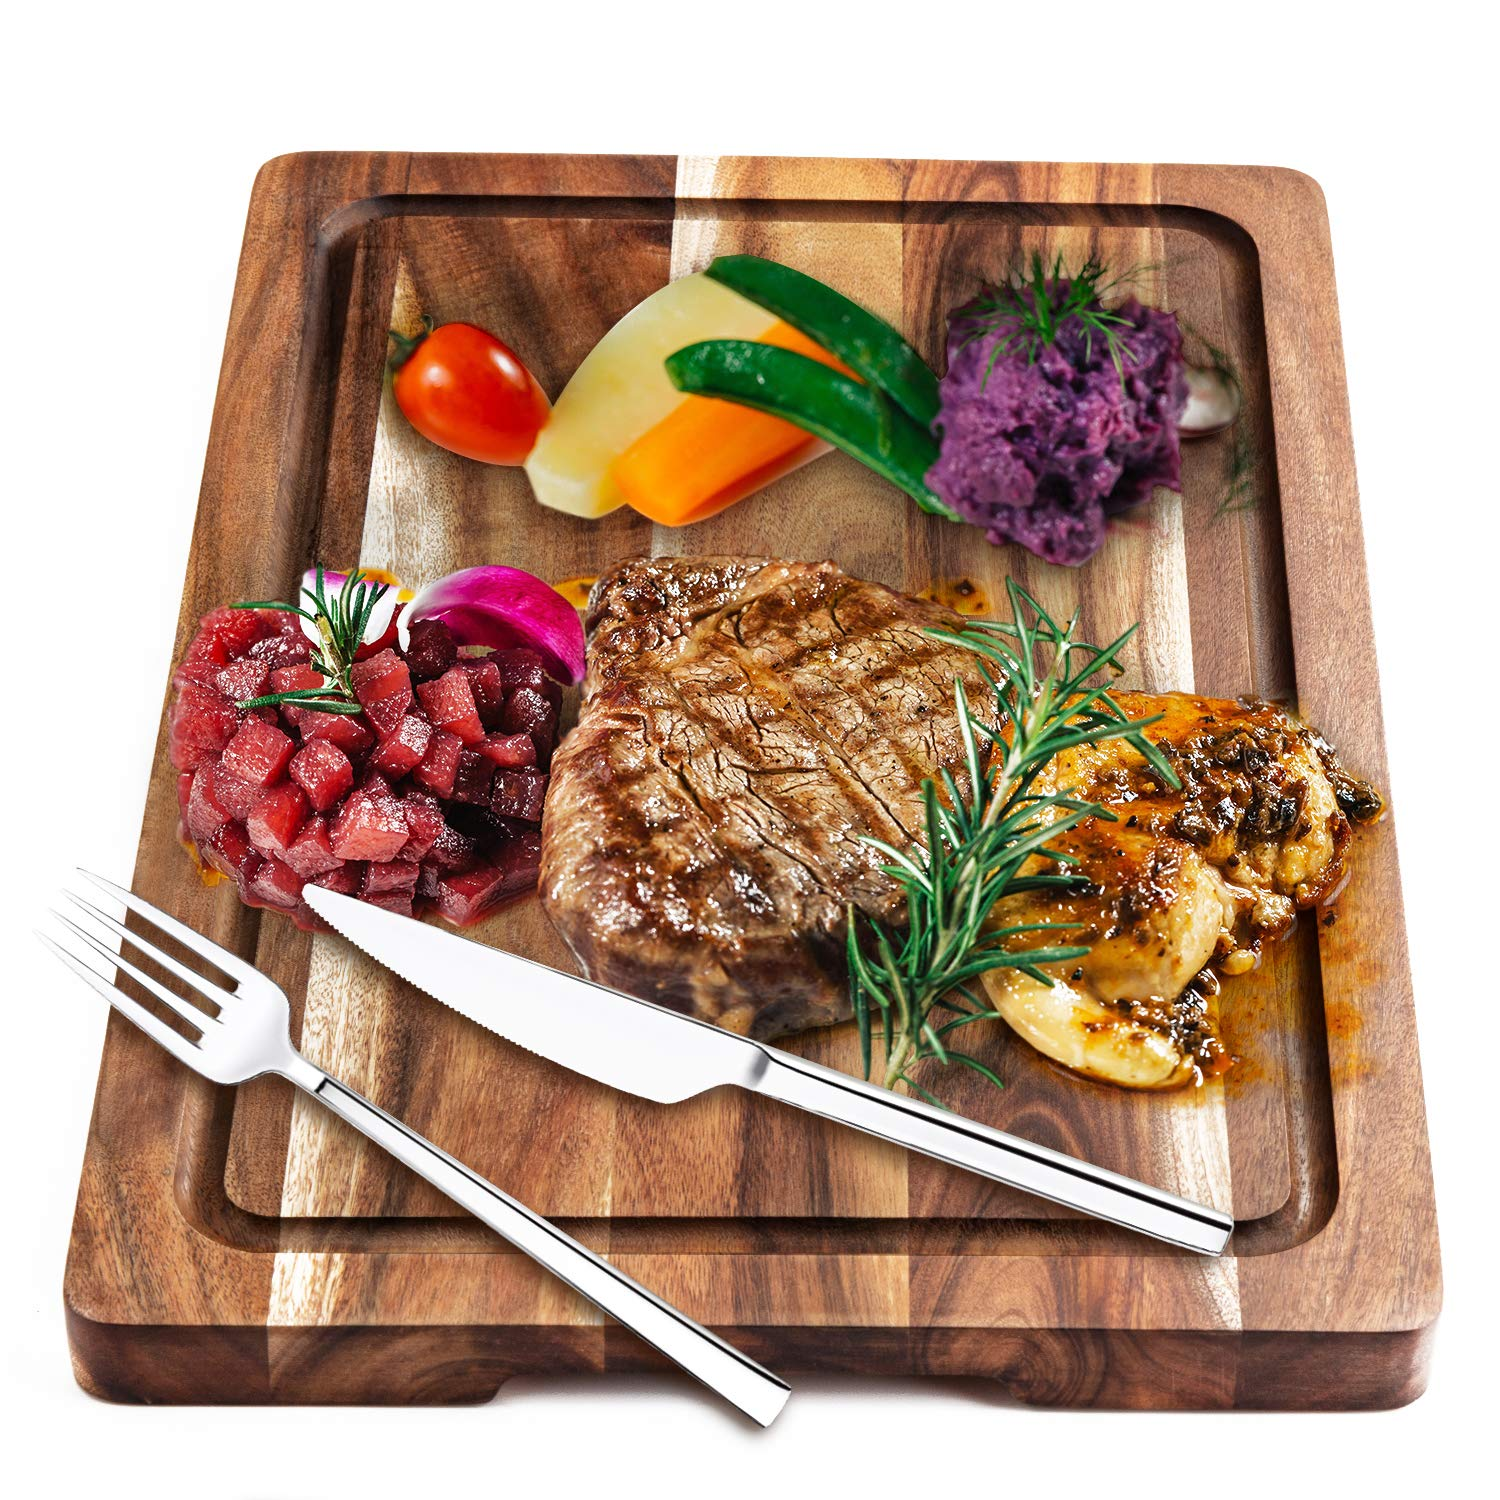 AIJAI Natural Wood Cutting Board, 15'x10'x0.7' Large Multipurpose Thick Acacia Wood Chopping Board for Kitchen Serving Tray for Vegetables, Fruit, Meat, Fish & Cheese  Reversible Butcher Block